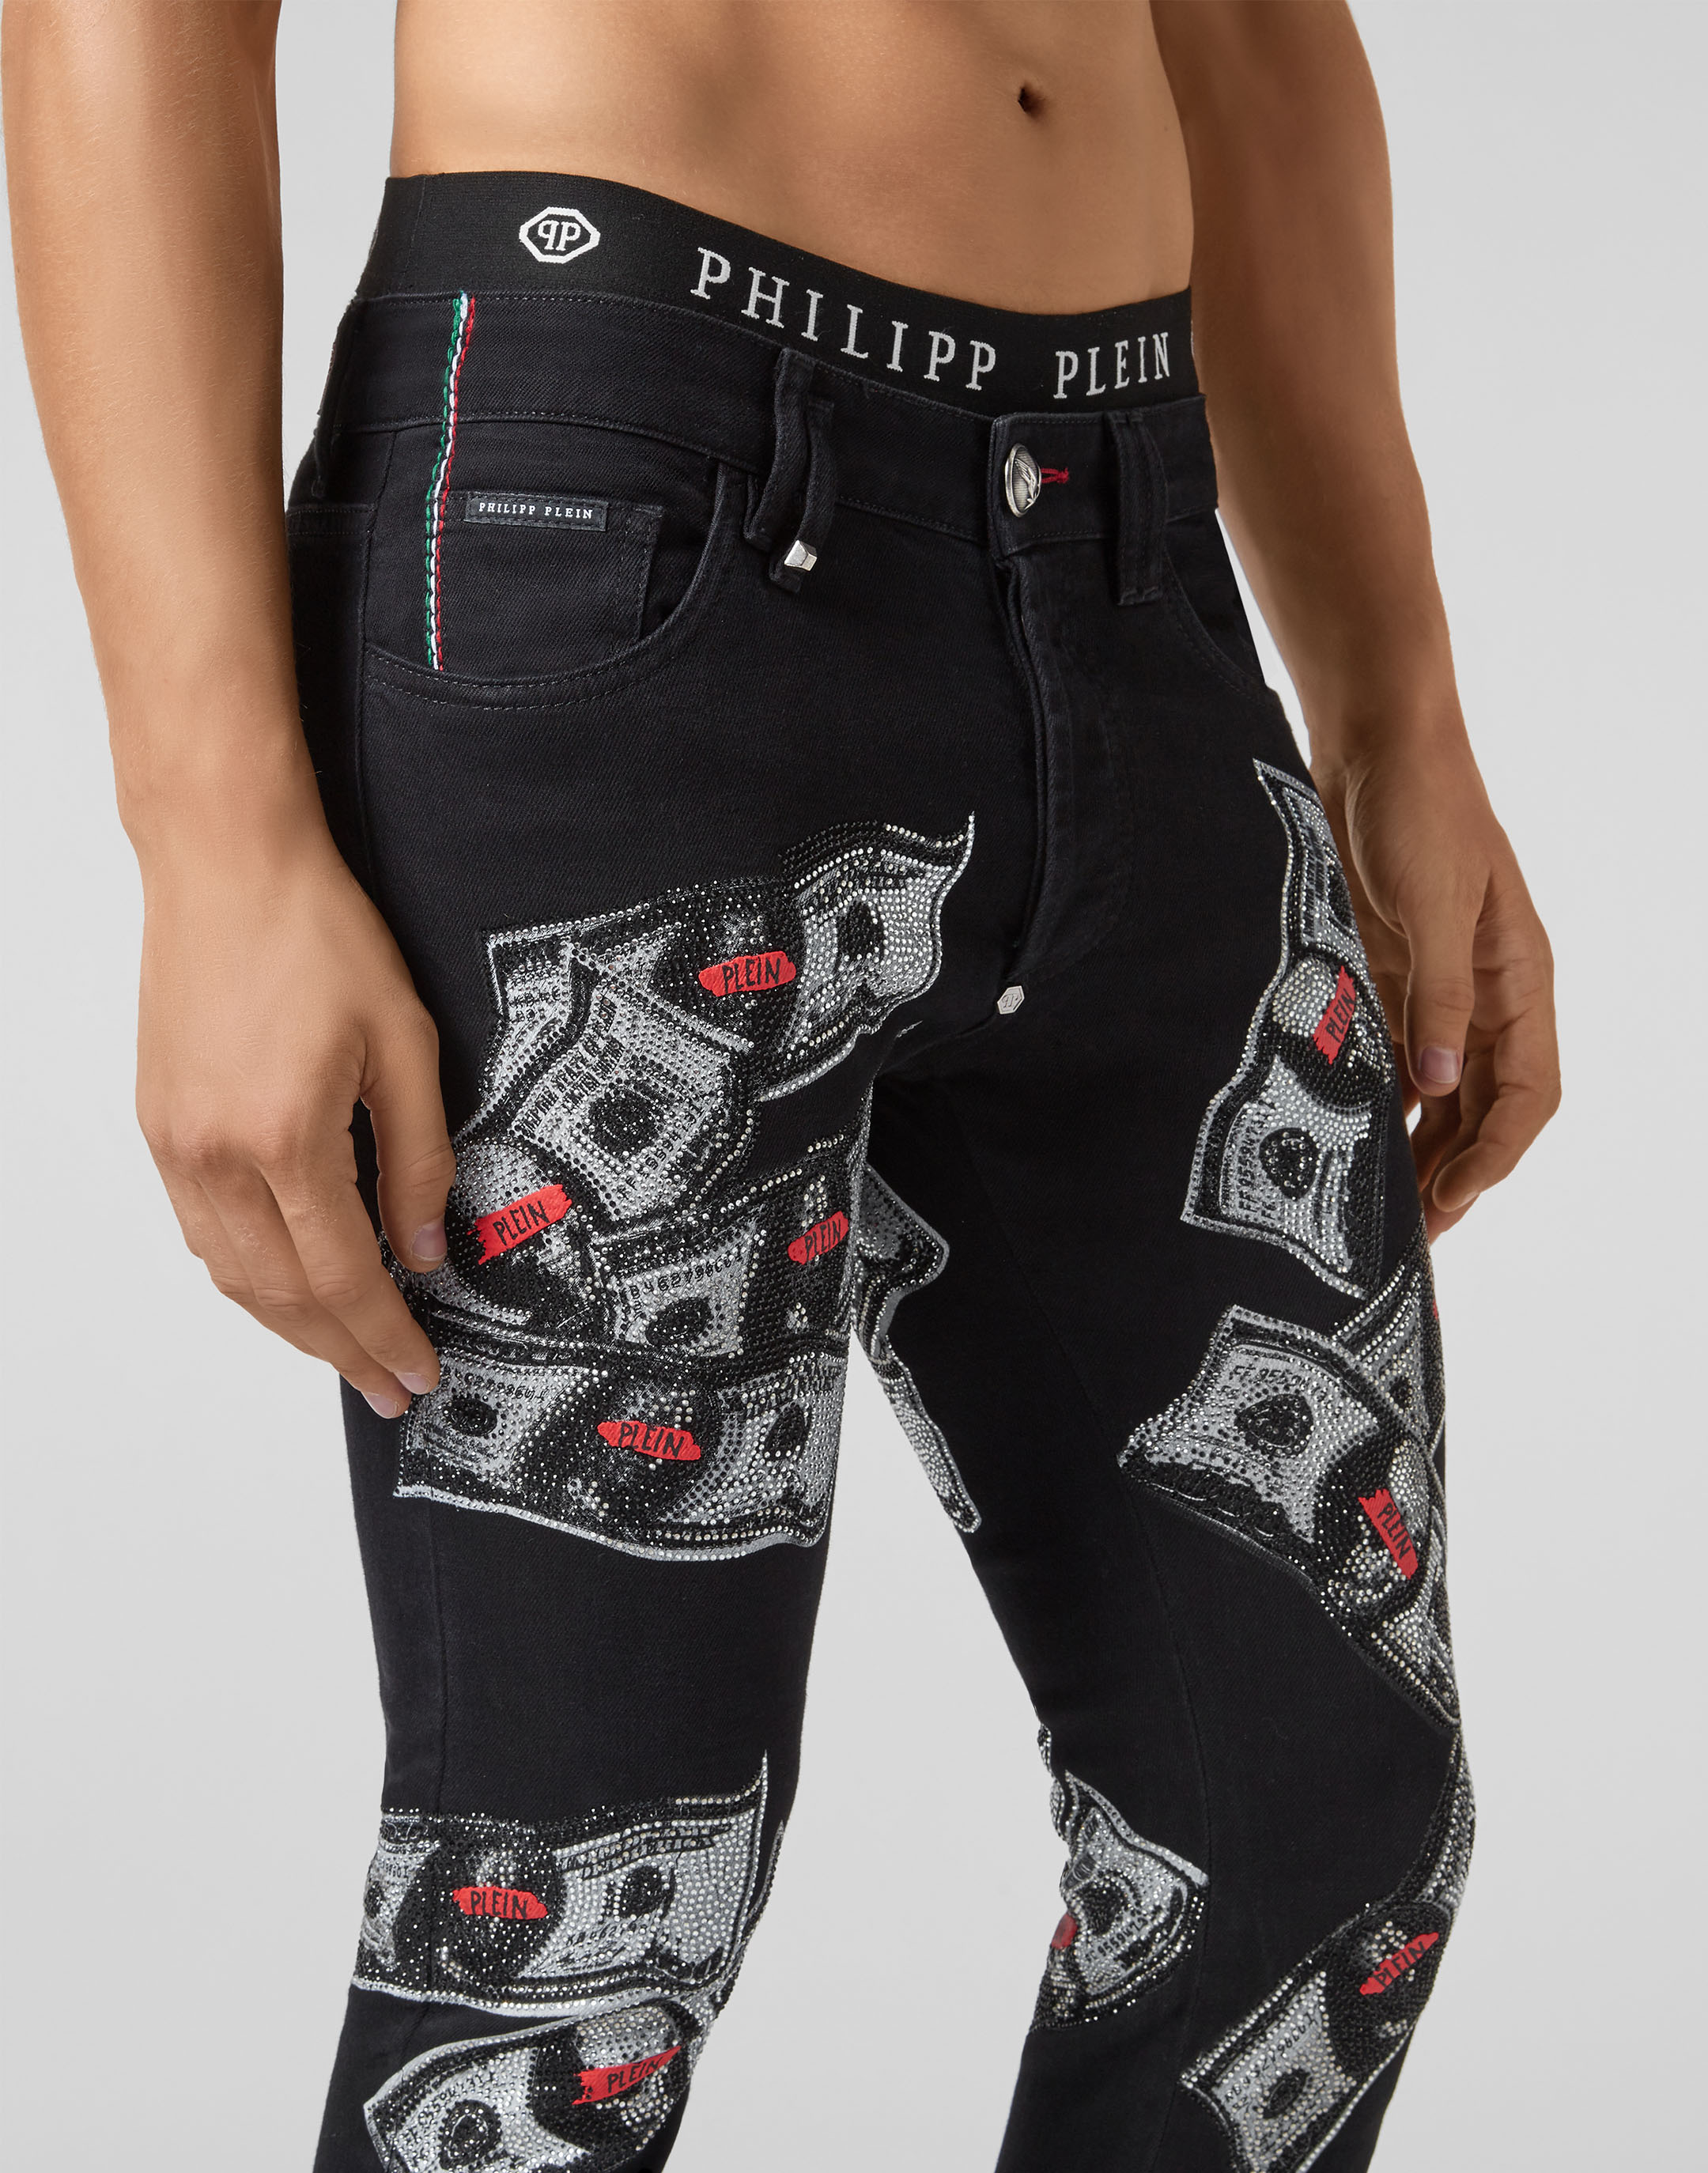 715c32c4bc9a Super Straight Cut Dollar   Philipp Plein